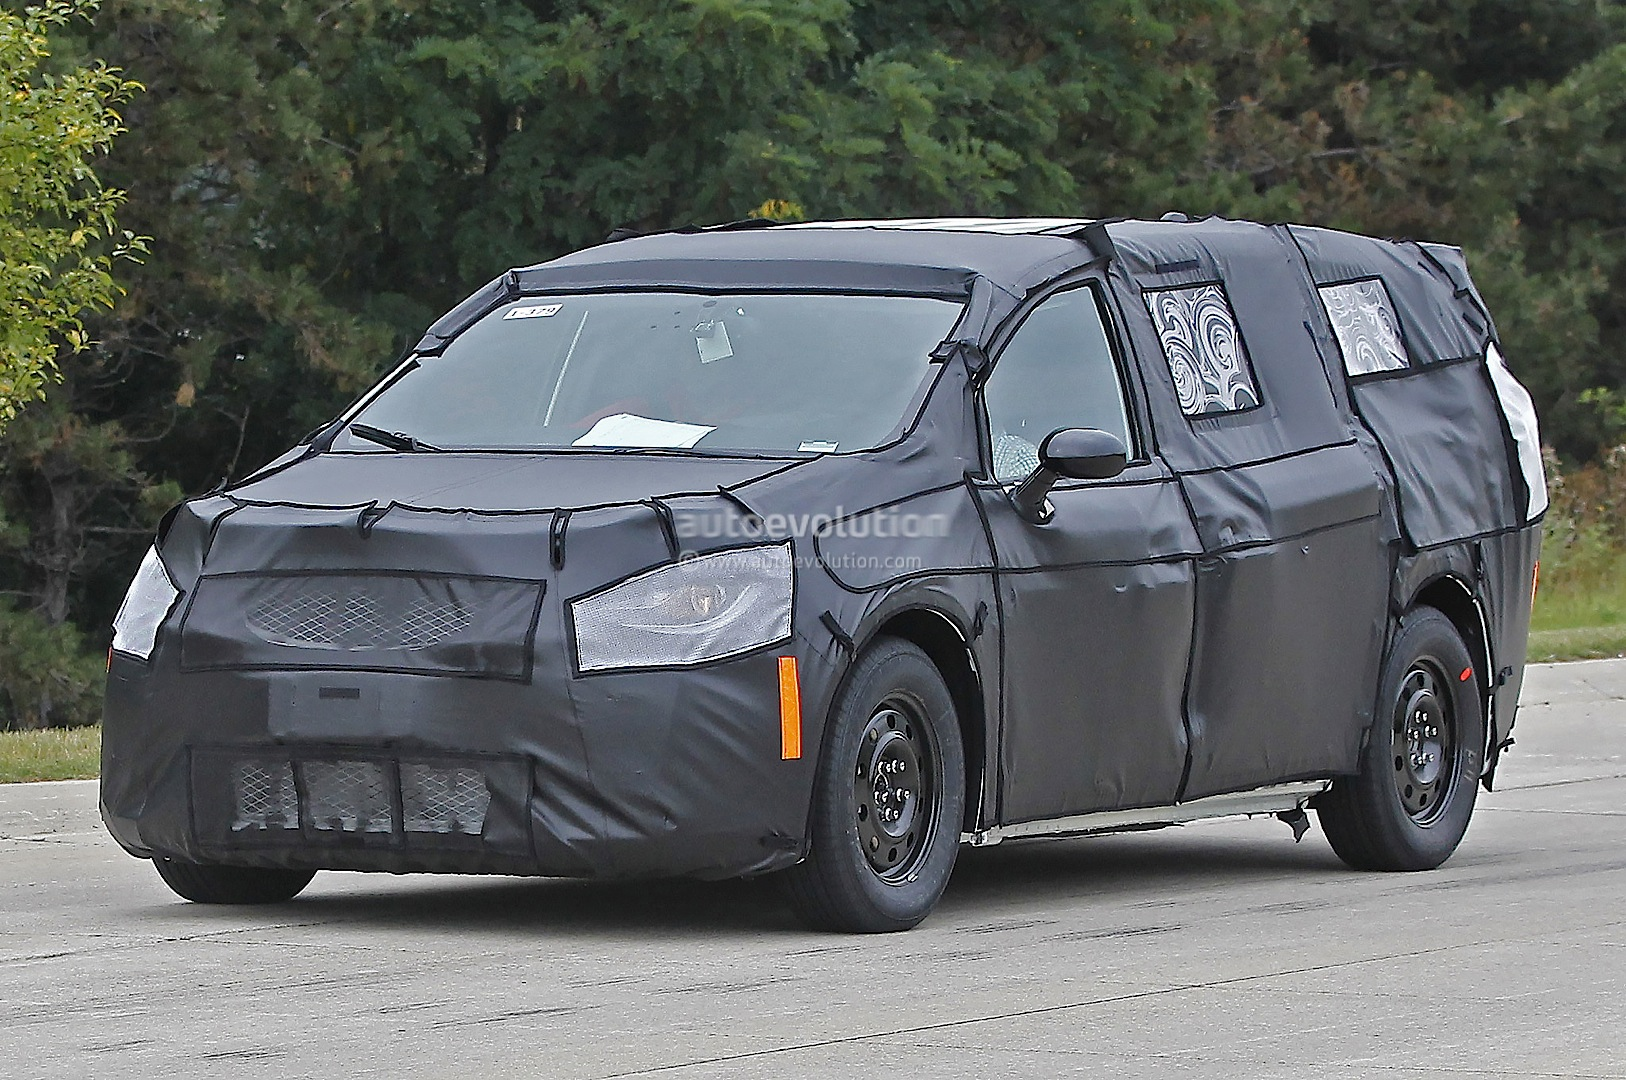 2015 Chrysler Town & Country Adds New Trim Levels, Lower ...